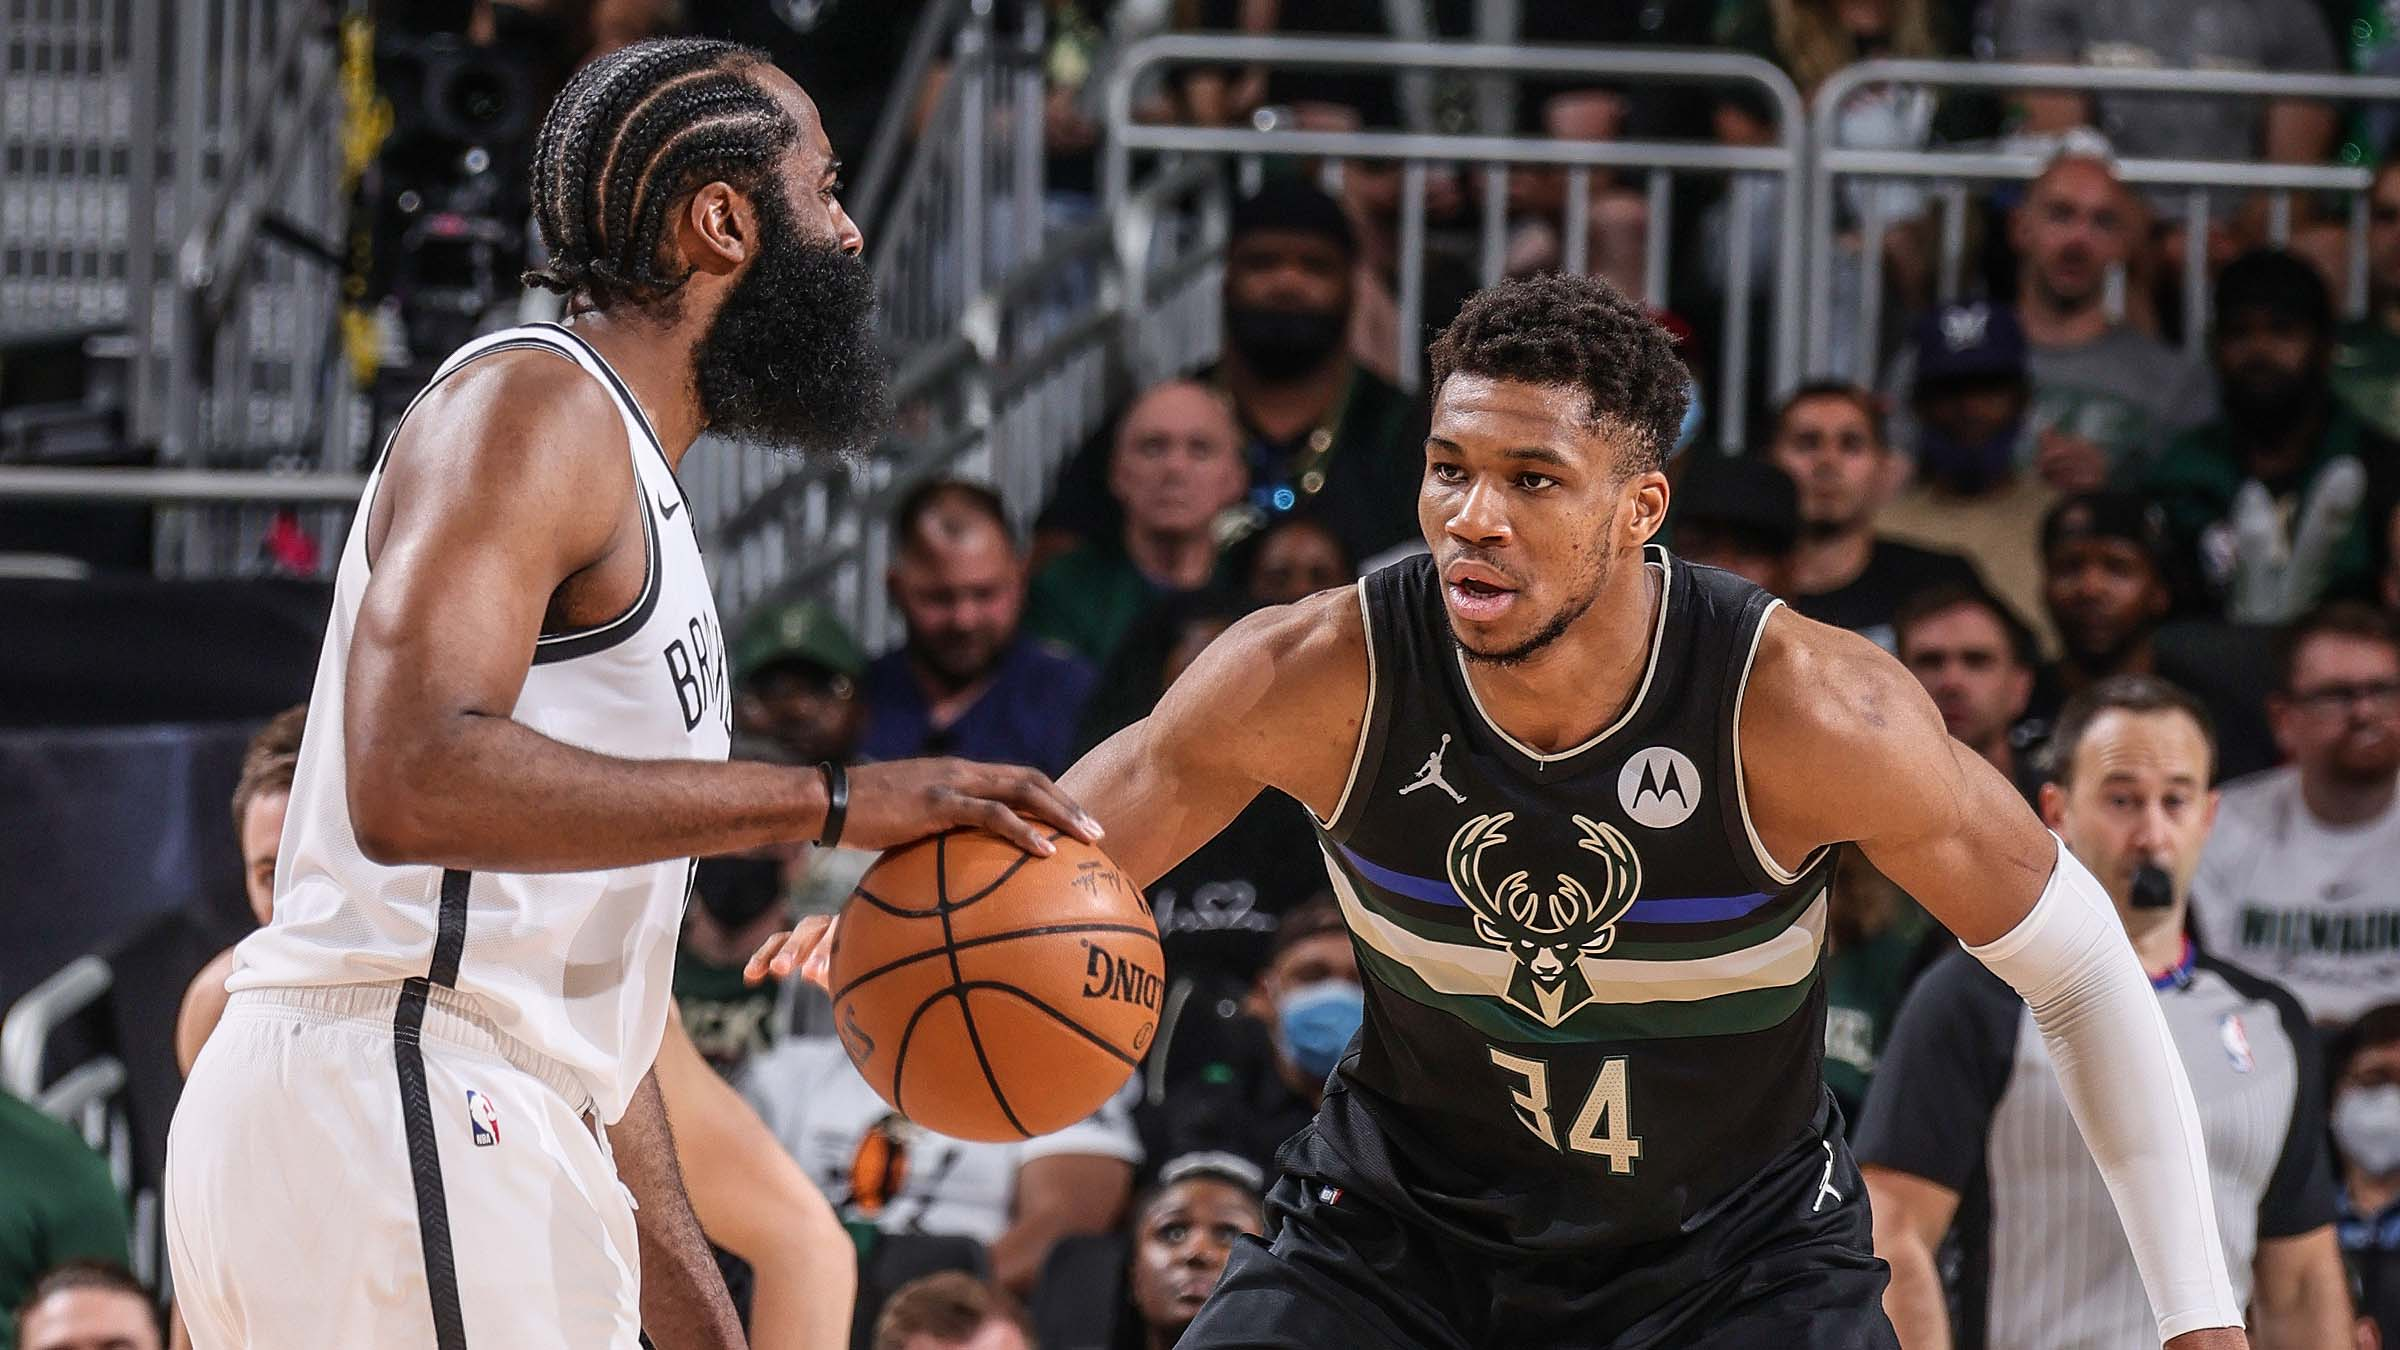 How to win $1,000 on Nets-Bucks in Game 7